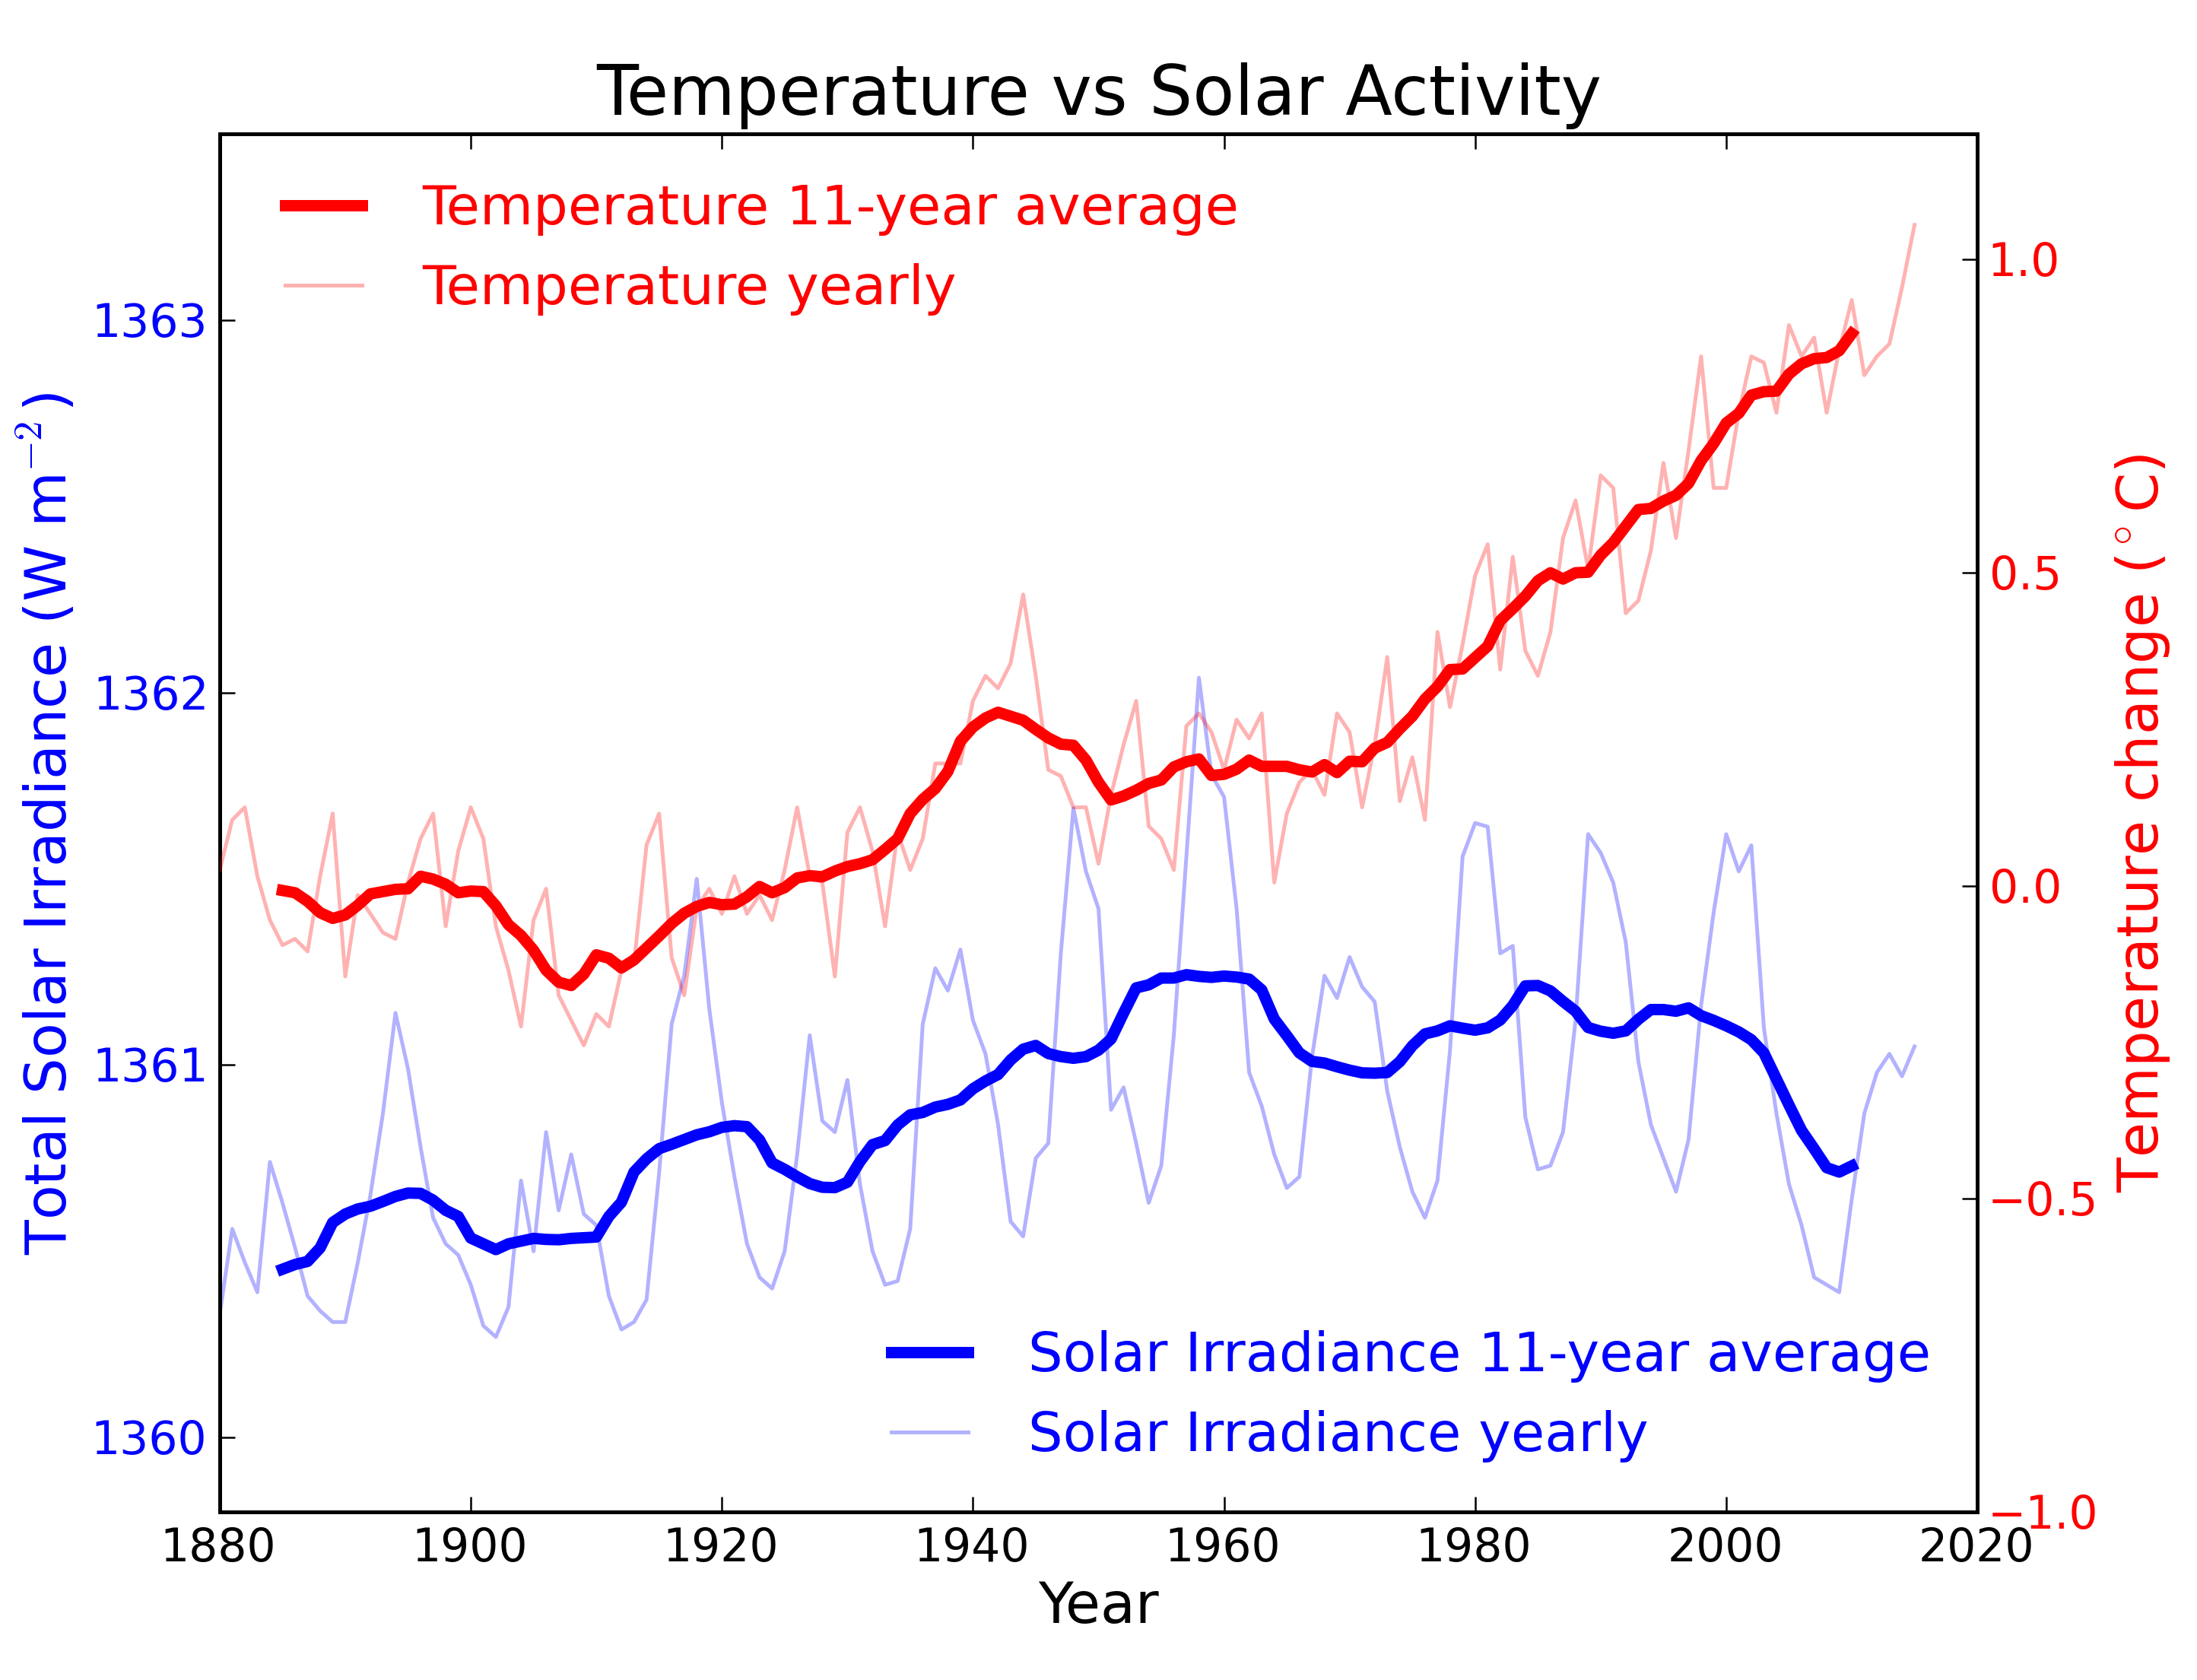 Figure 1 Shows The Trend In Global Temperature Compared To Changes